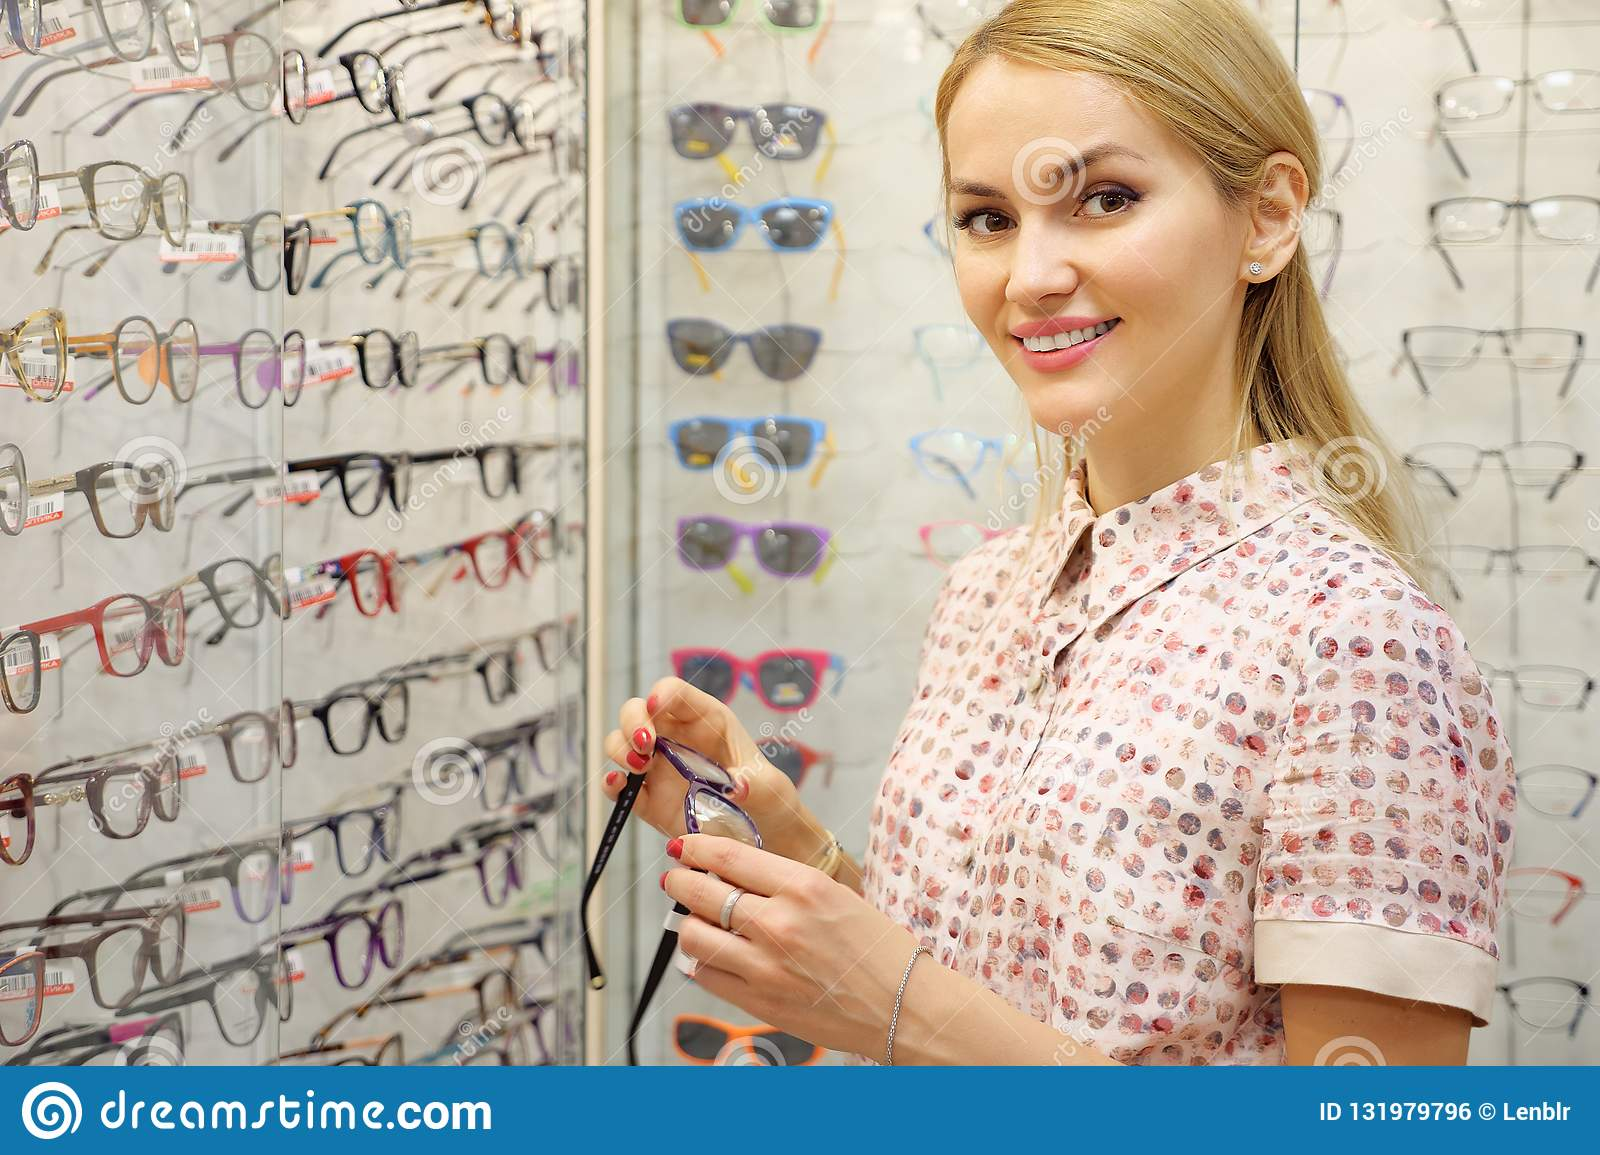 Smiling young woman trying new glasses at optician store